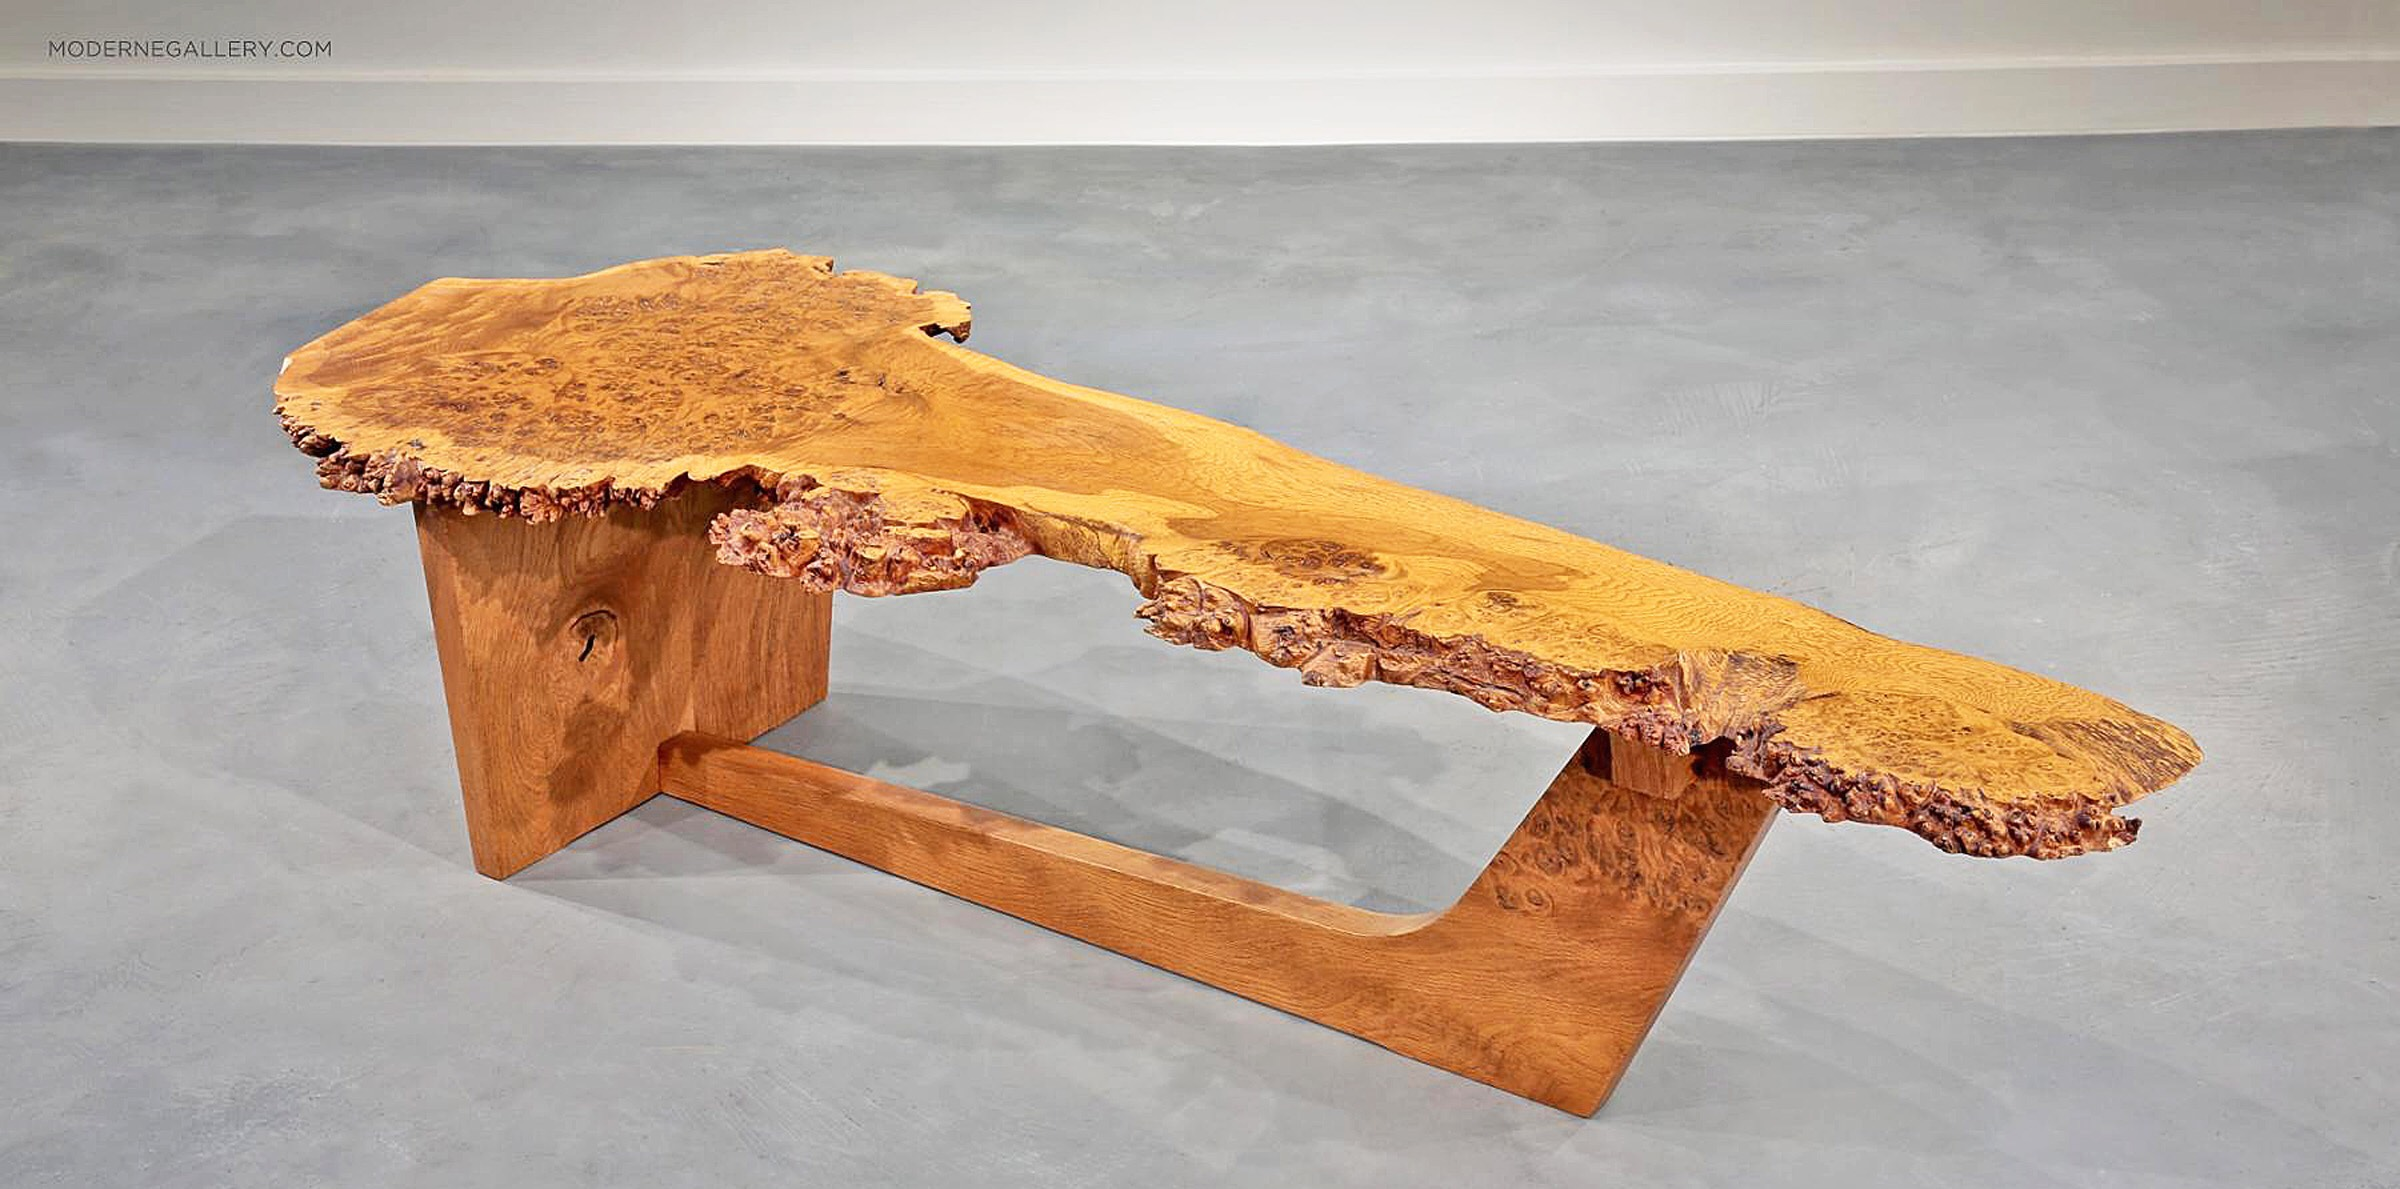 George Nakashima, Rare English Oak Burl Sled Based Coffee Table, 1982. From  Moderne Gallery.